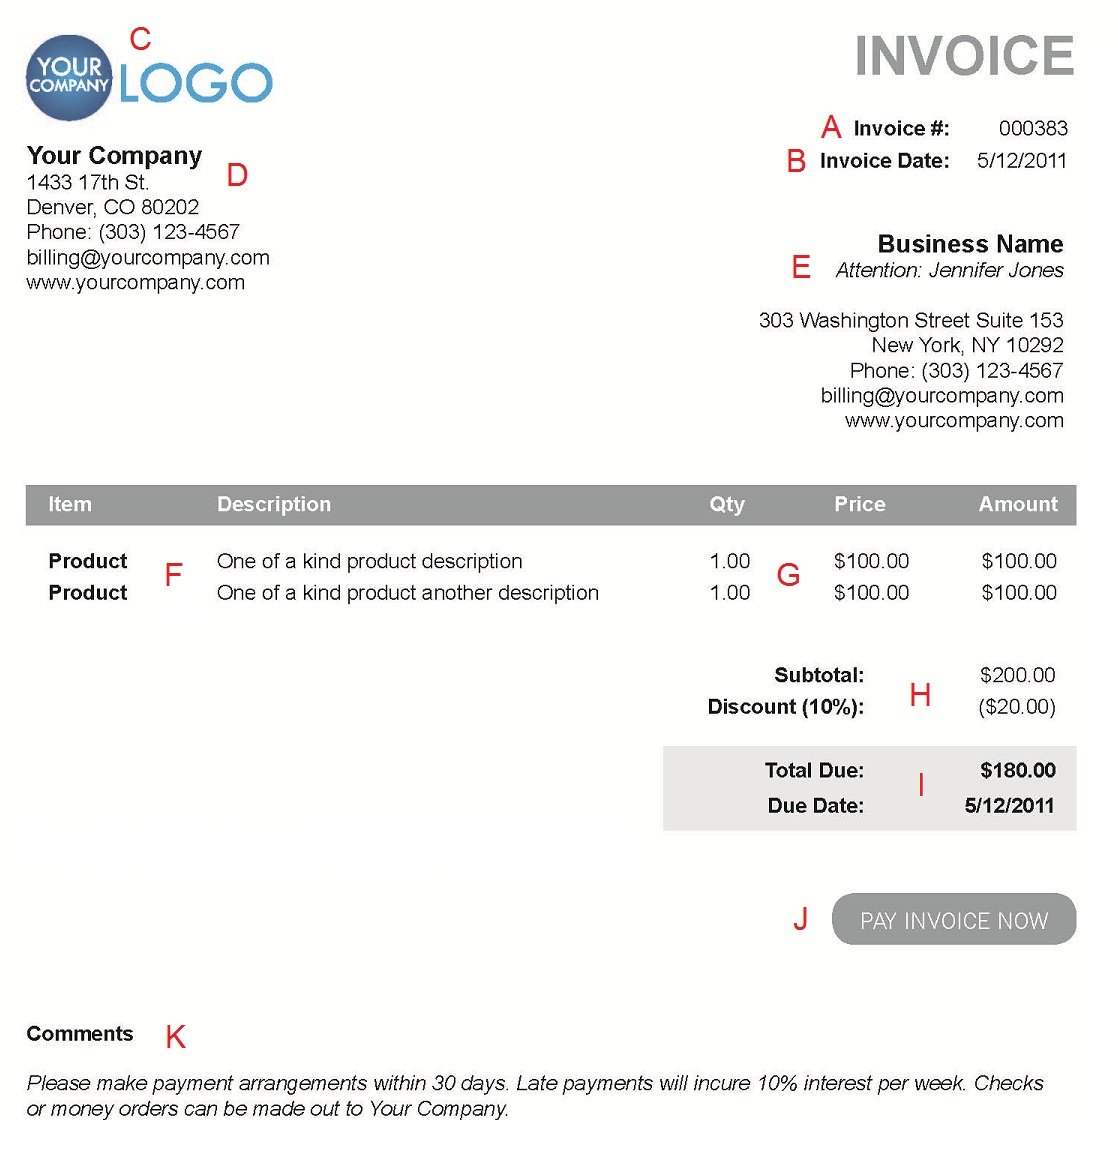 Breakupus  Outstanding The  Different Sections Of An Electronic Payment Invoice With Entrancing A  With Awesome Boston Coach Receipts Also Receipt For Lasagna In Addition Apple Receipt Online And Tracking Number On Usps Receipt As Well As Receipts Cause Cancer Additionally Receipt Stub From Paysimplecom With Breakupus  Entrancing The  Different Sections Of An Electronic Payment Invoice With Awesome A  And Outstanding Boston Coach Receipts Also Receipt For Lasagna In Addition Apple Receipt Online From Paysimplecom